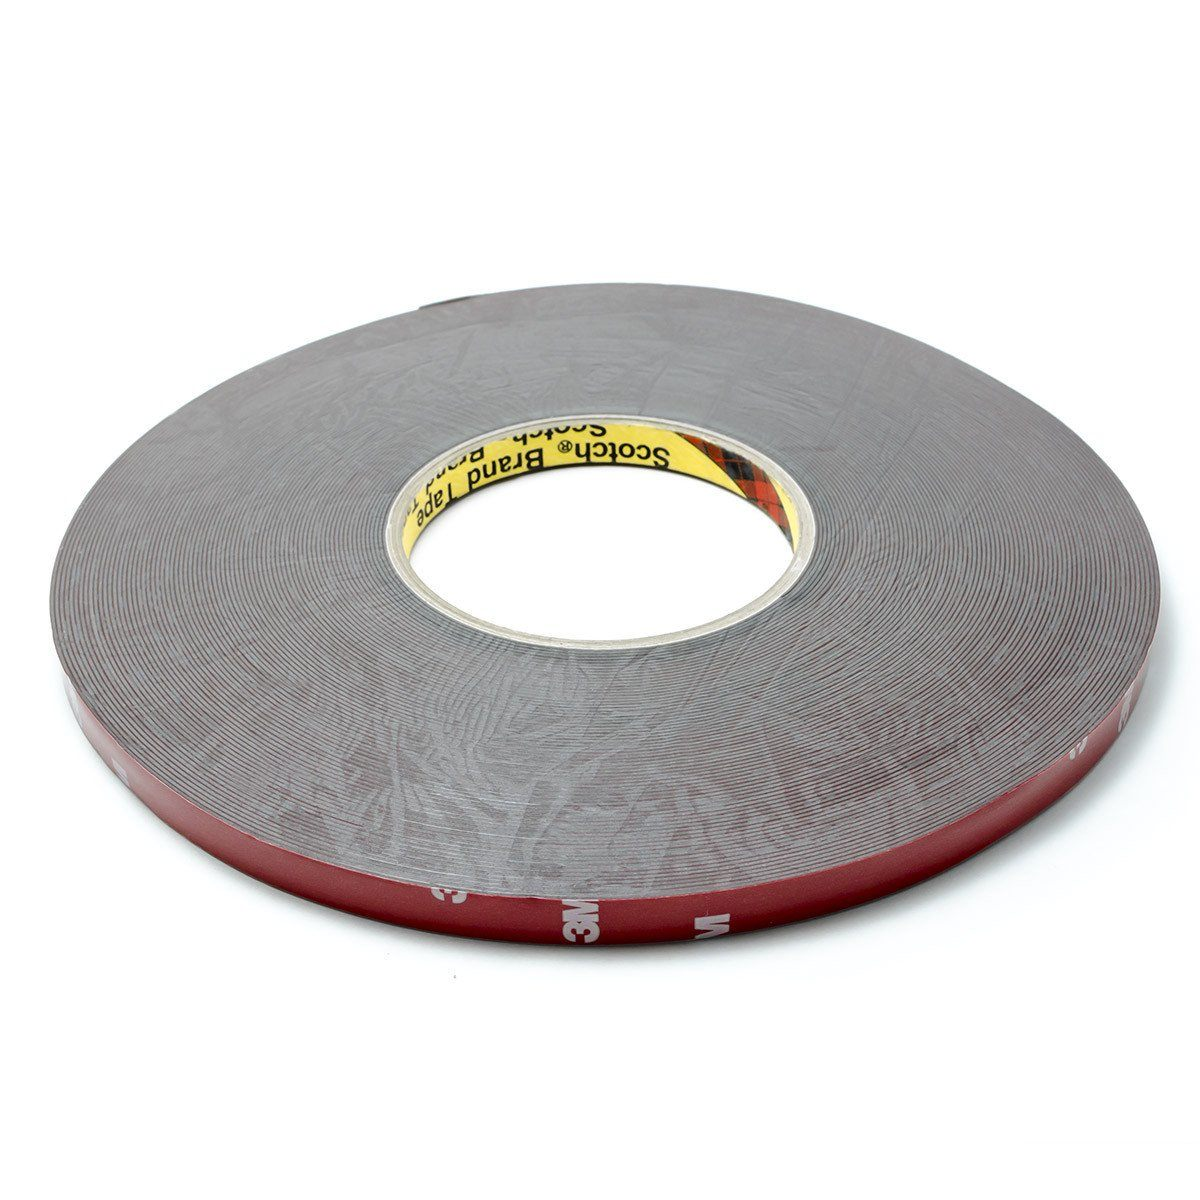 Heavy Duty Foam Mounting Tape : 32 - 100 Feet - HitLights